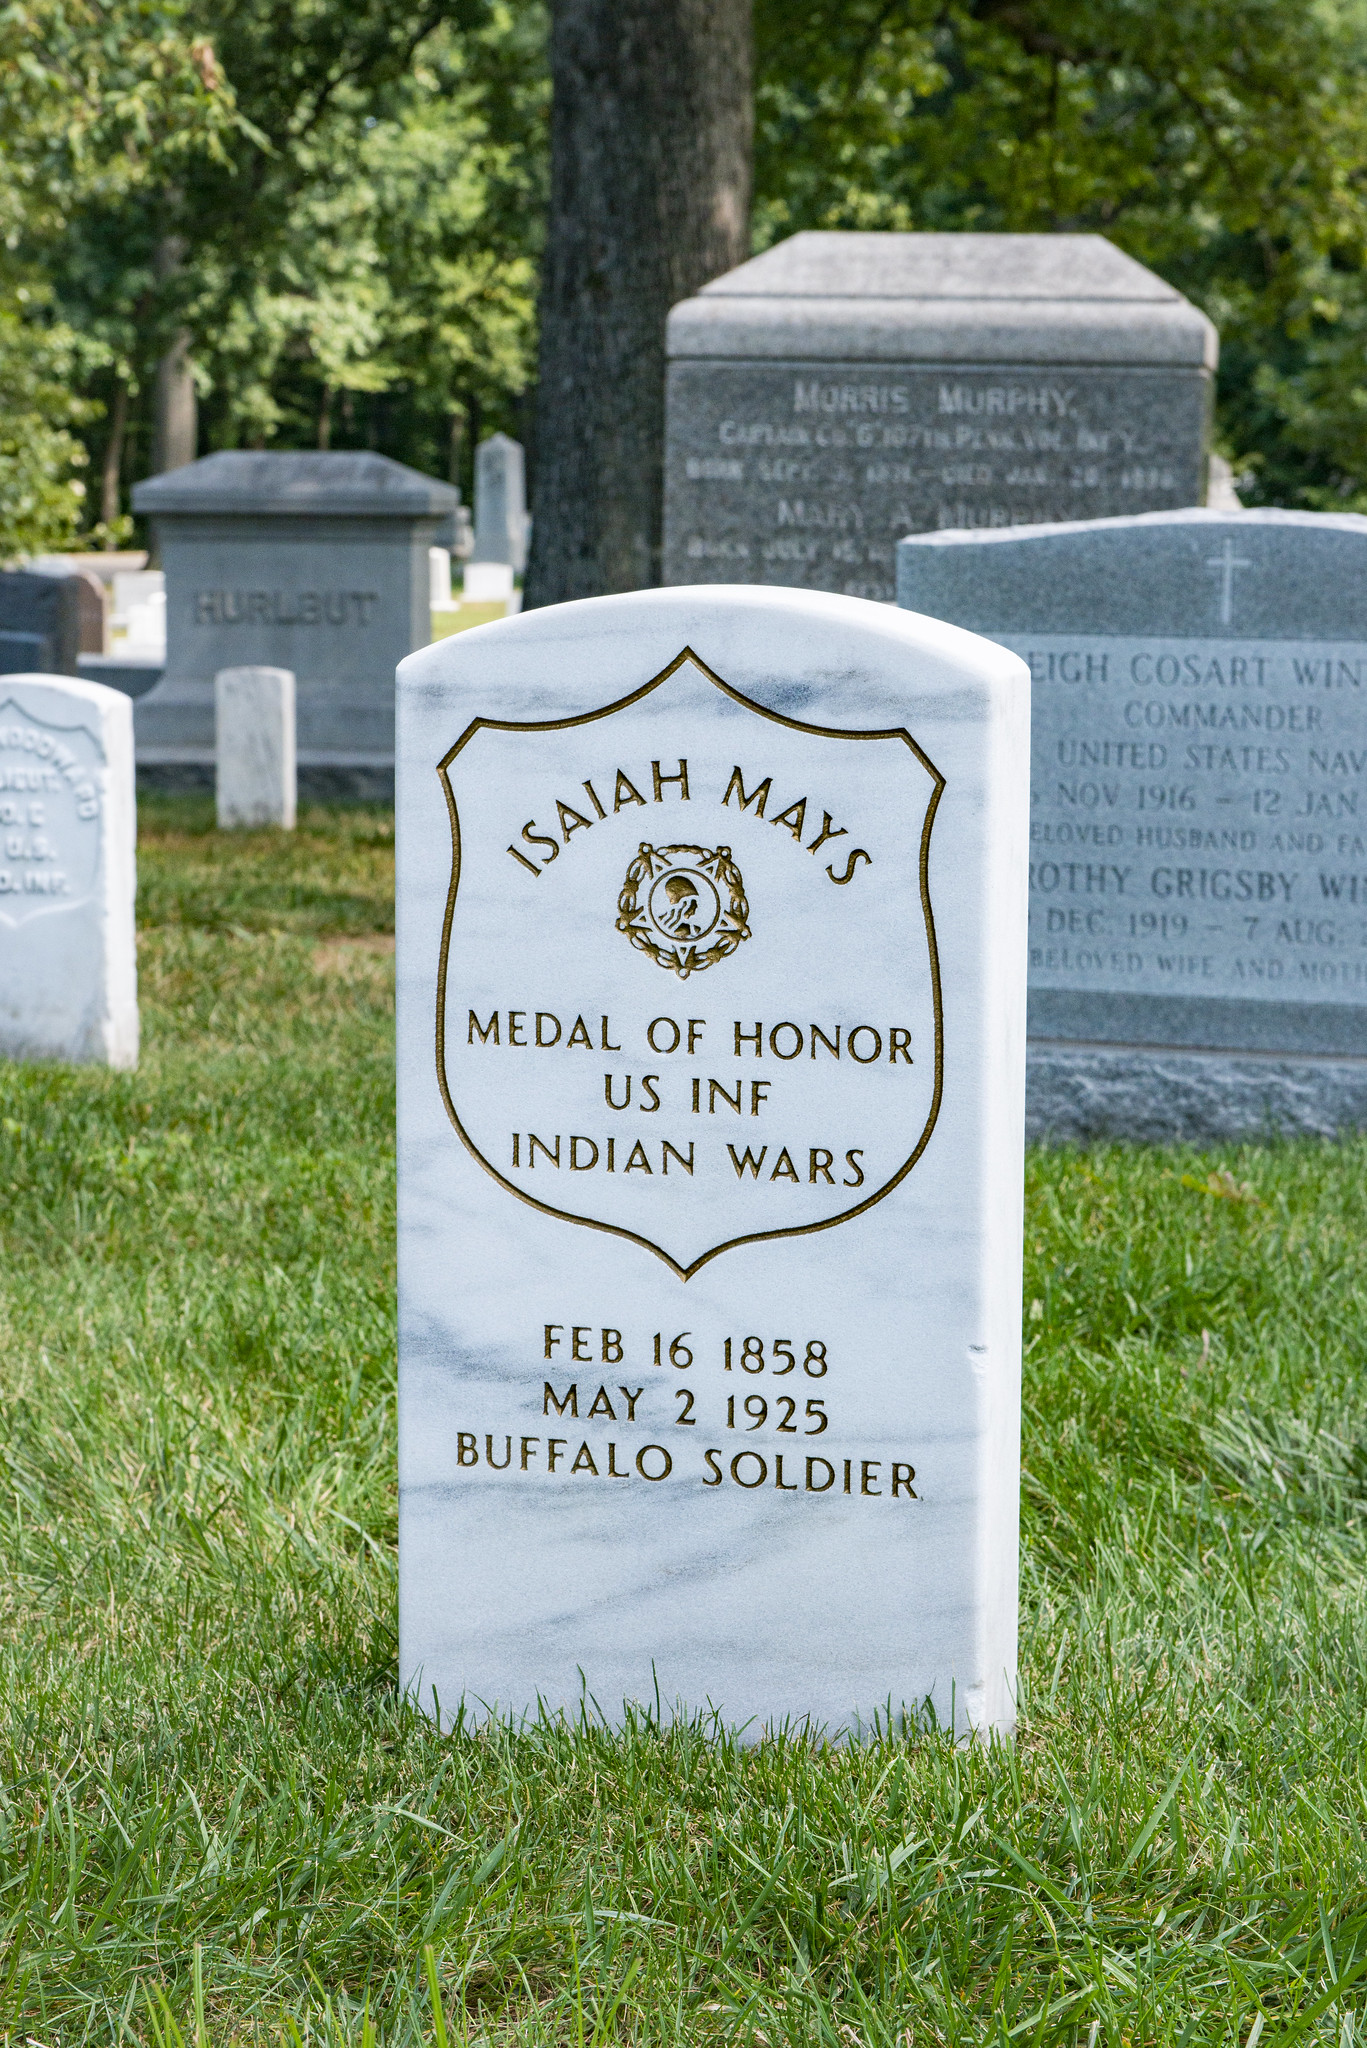 Gravesite of Isaiah Mays, one of two African Americans to receive the Medal of Honor during the Indian Wars